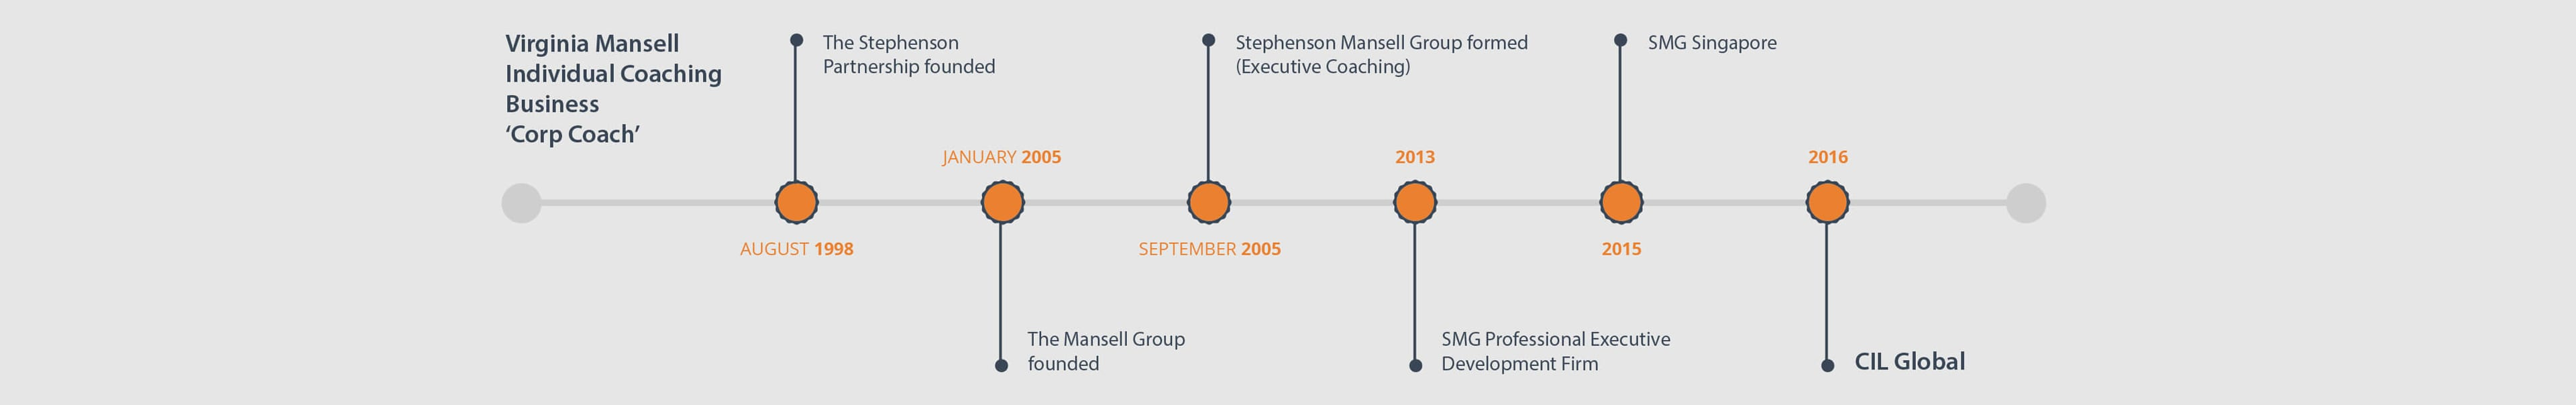 Virginia Mansell Individual Coaching Business 'Corp Coach'